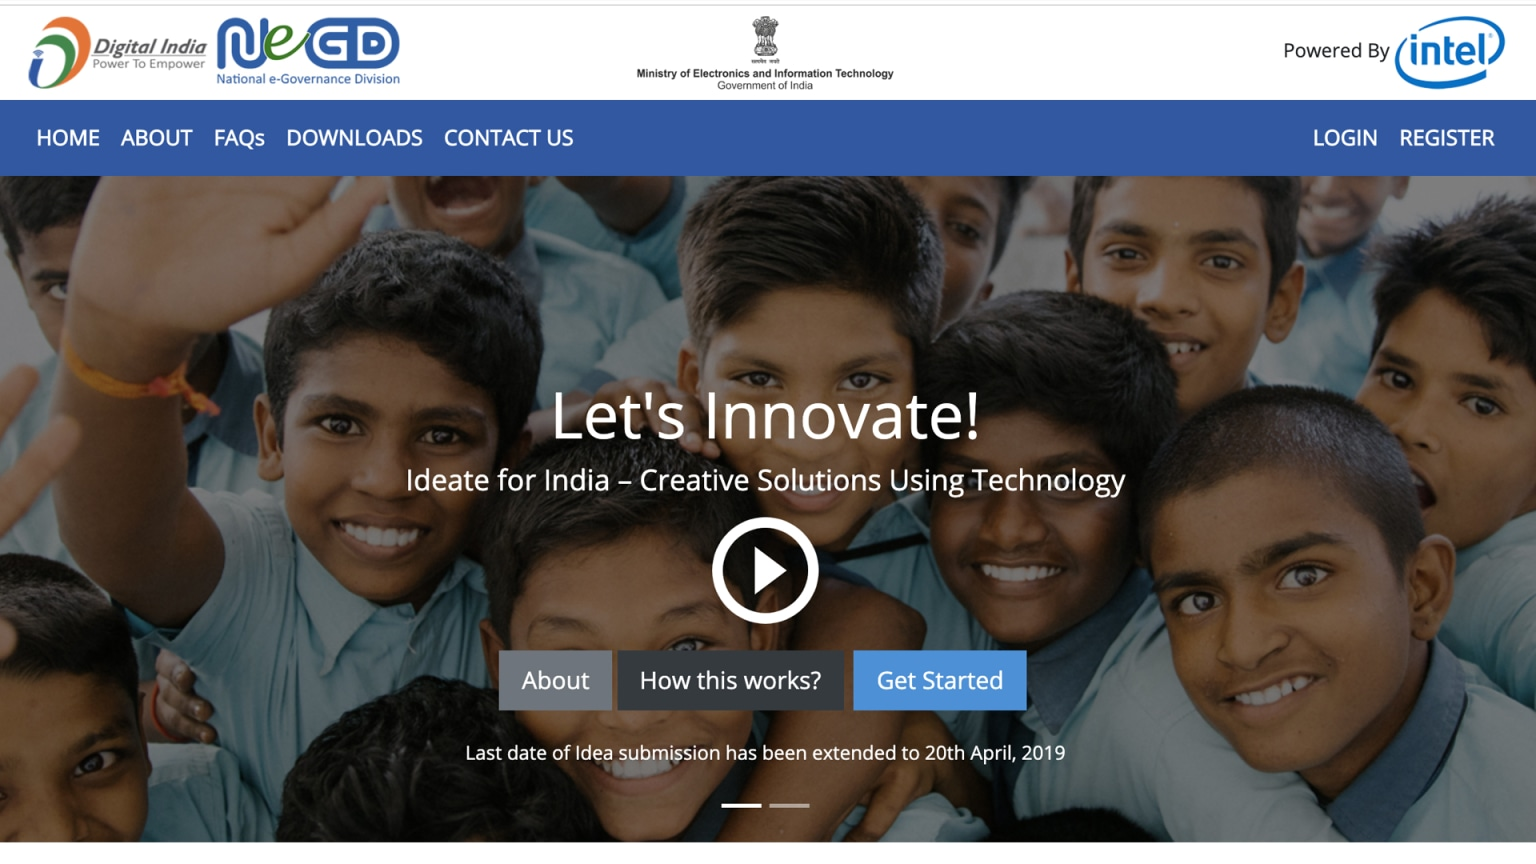 Ideate for India